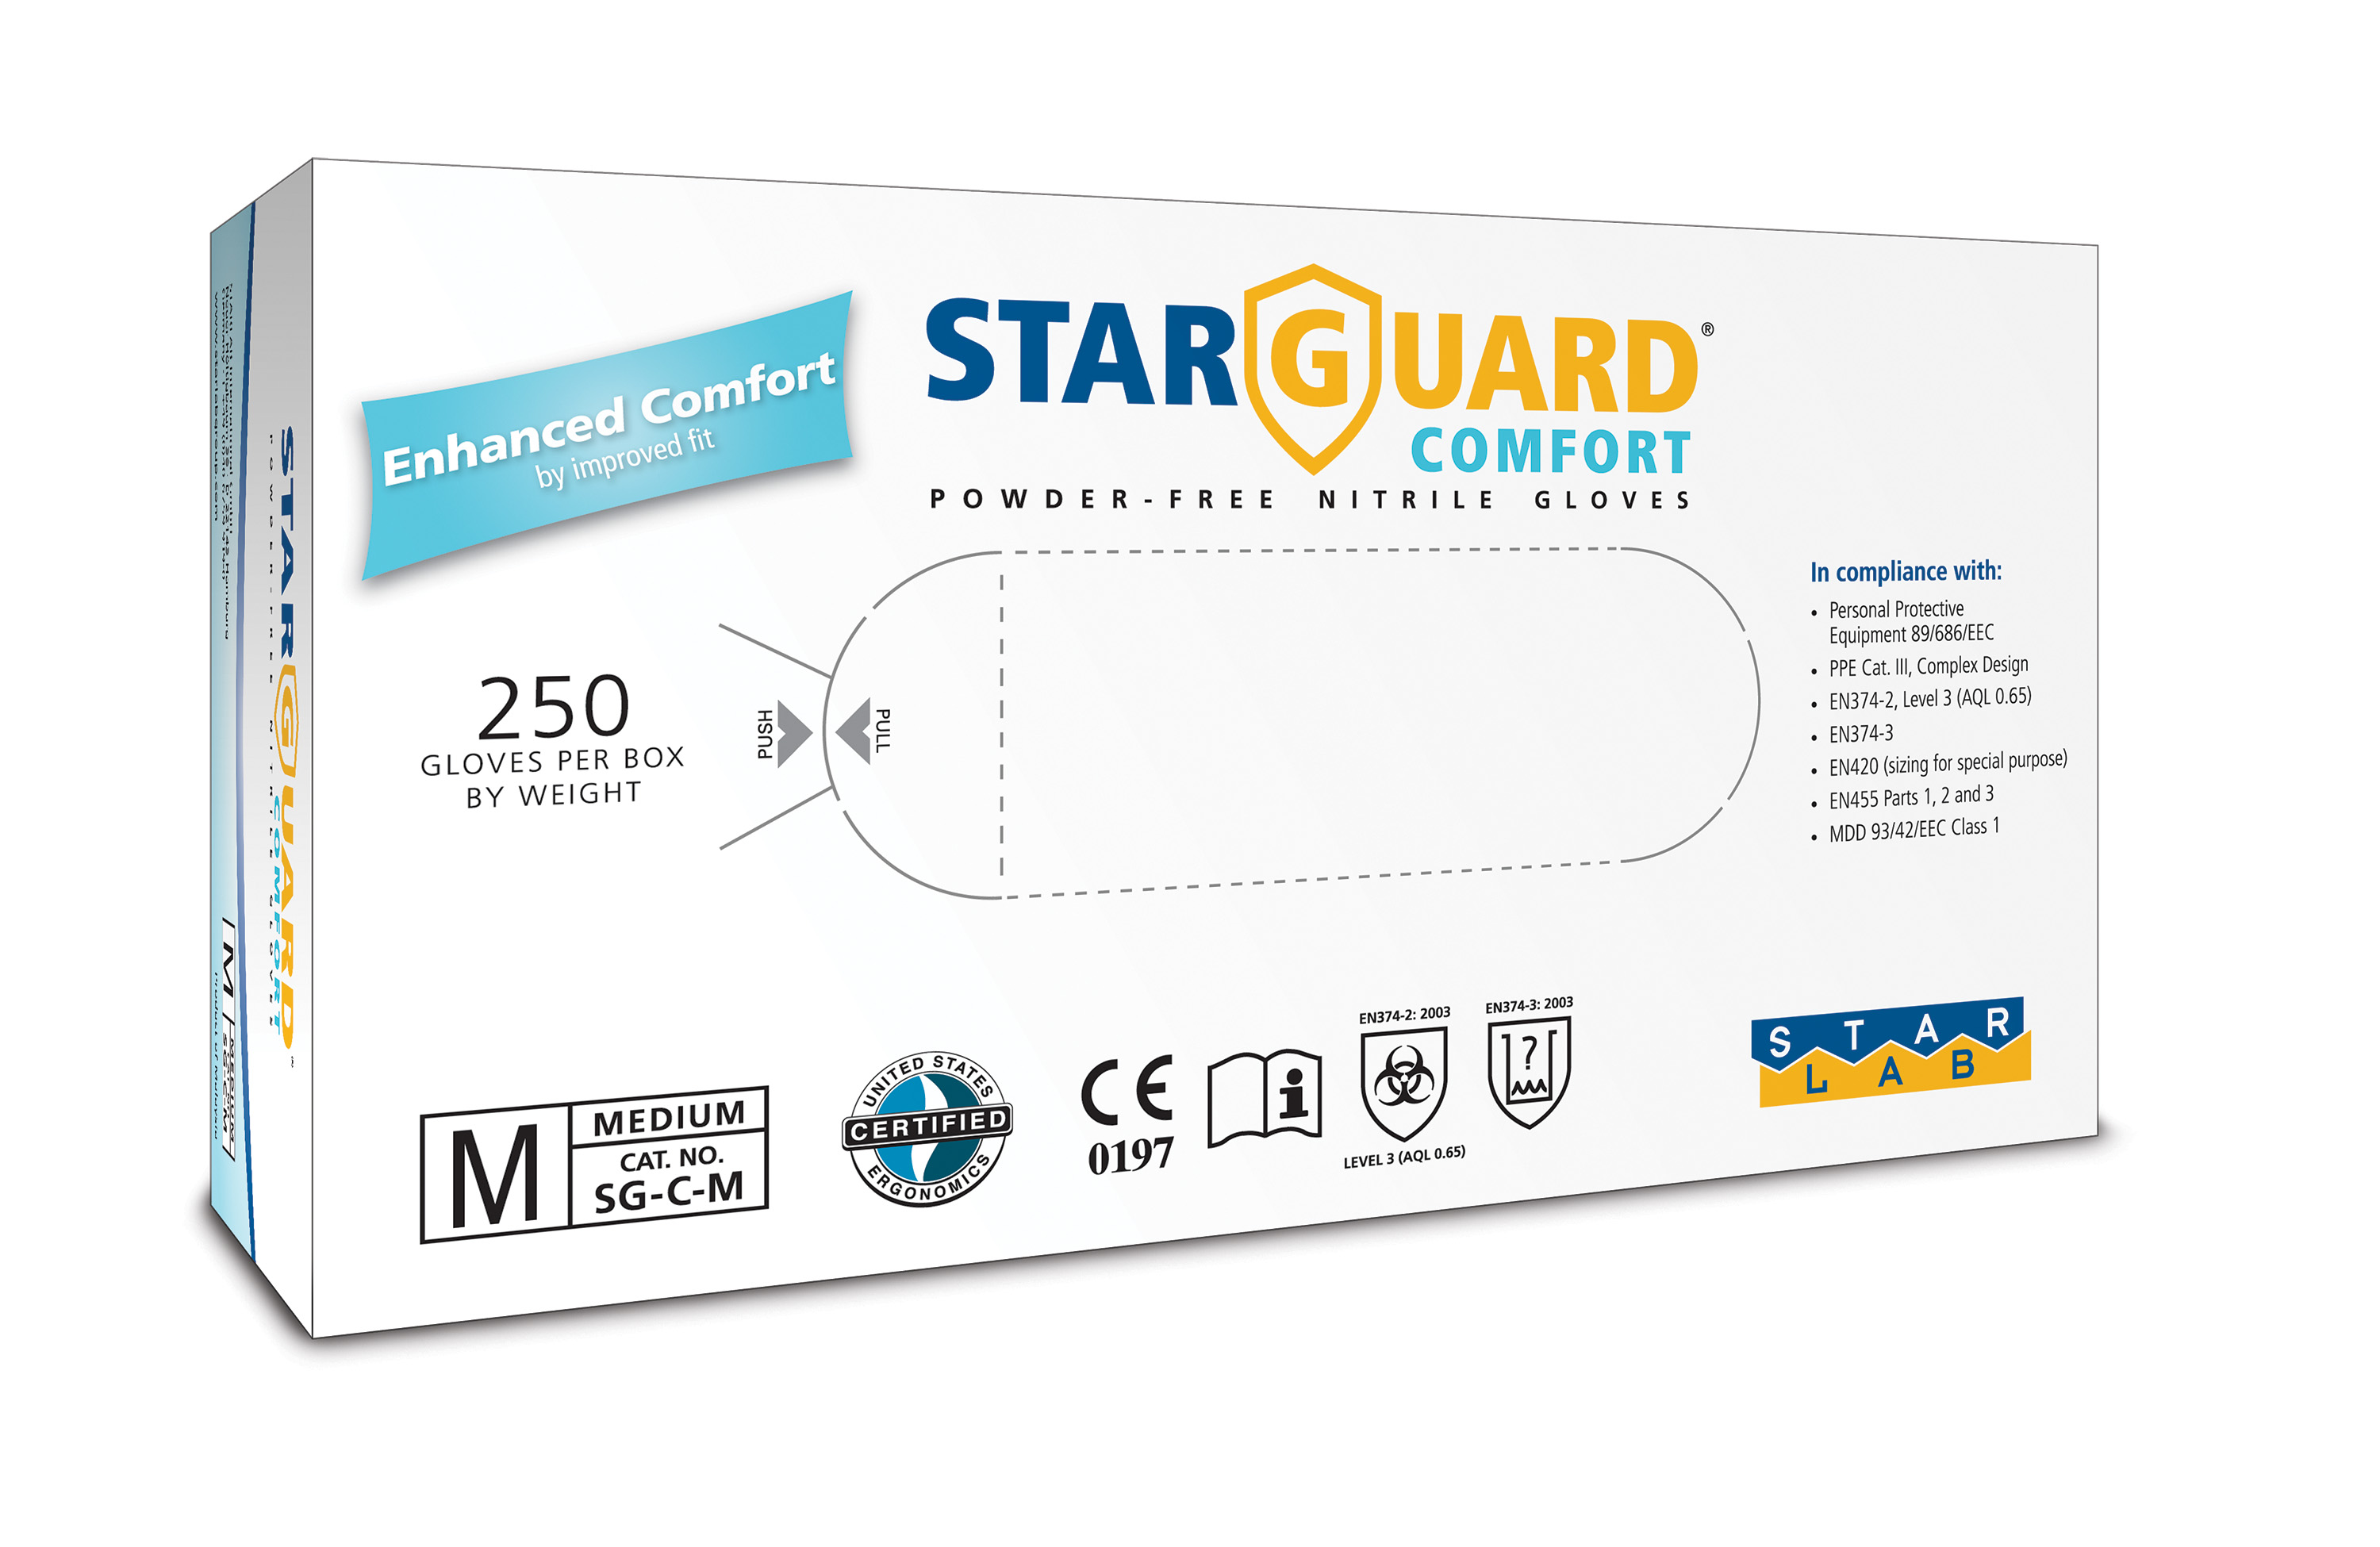 StarGuard COMFORT  (feels like Latex) Nitrile Gloves, Powder Free, Blue, Size L, Pk/ 10 x 250 gloves  - just sFr. 5,85/100 gloves